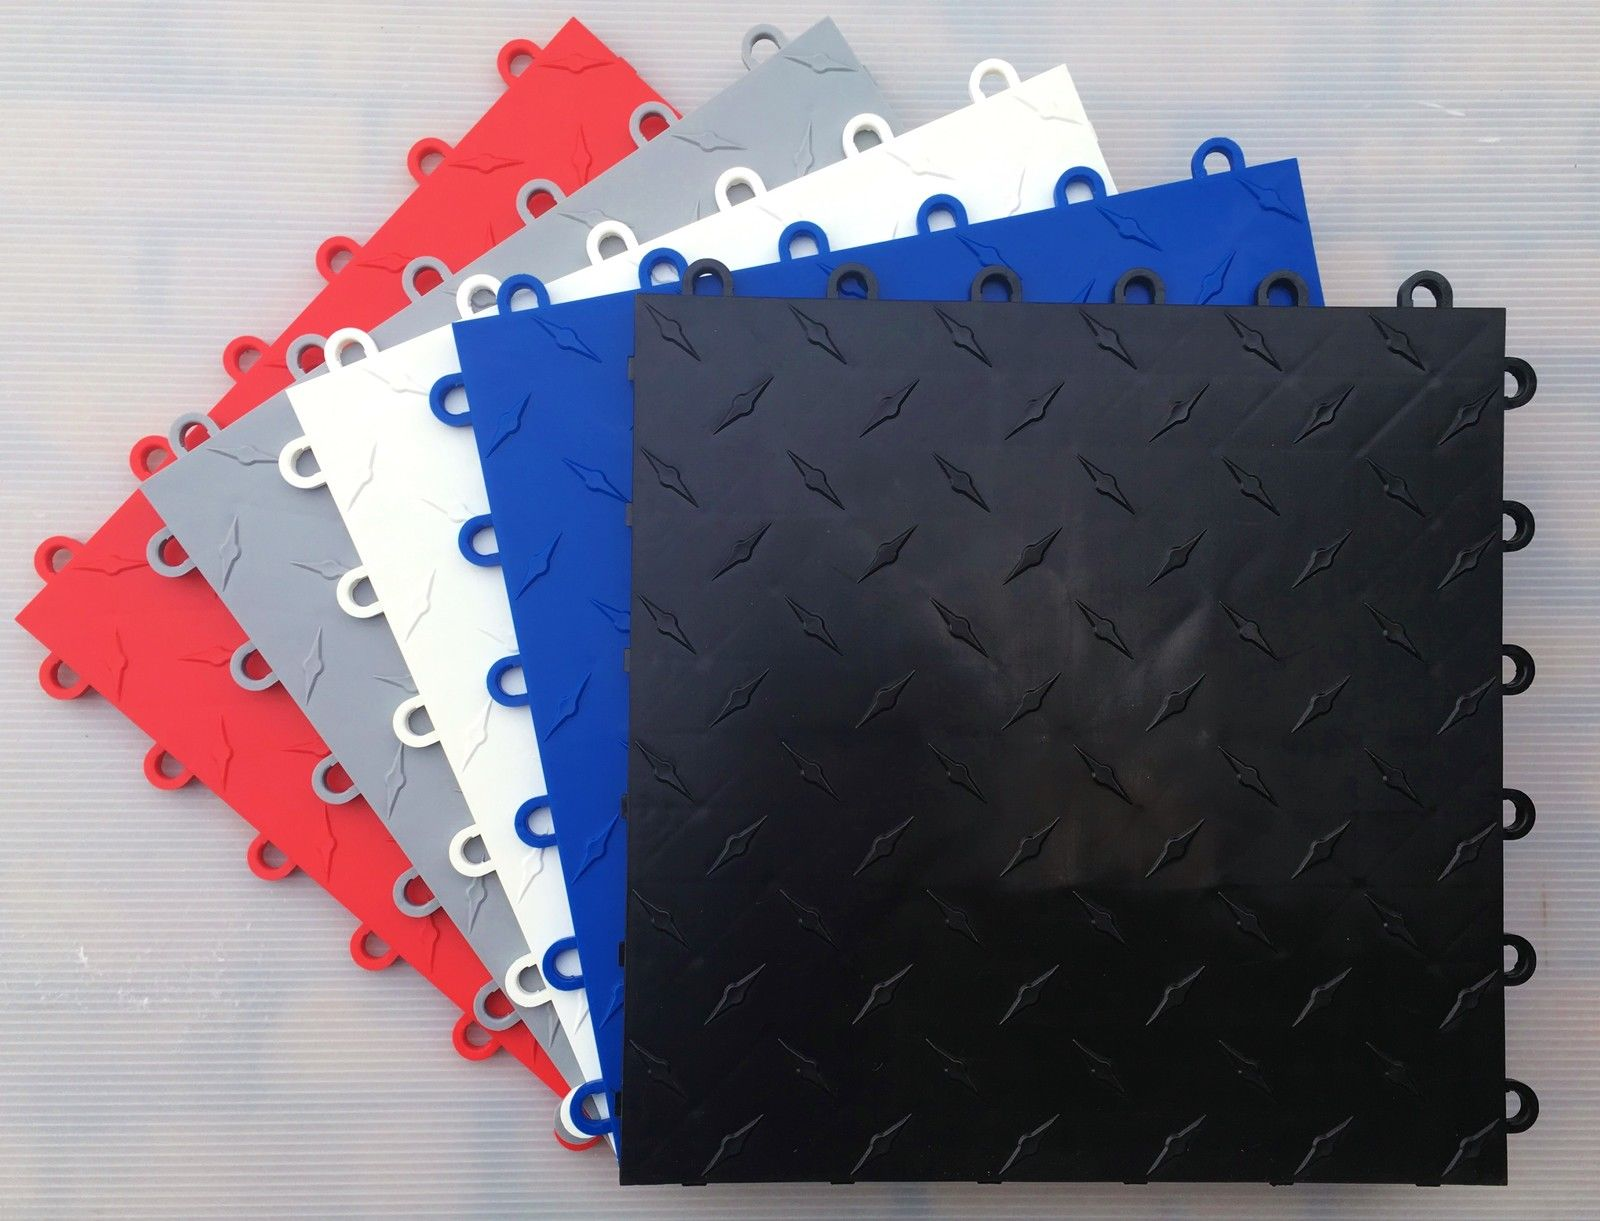 Highest quality polypropylene floor tiles sample kit 2 x tiles highest quality polypropylene floor tiles modular garage flooring system dailygadgetfo Image collections